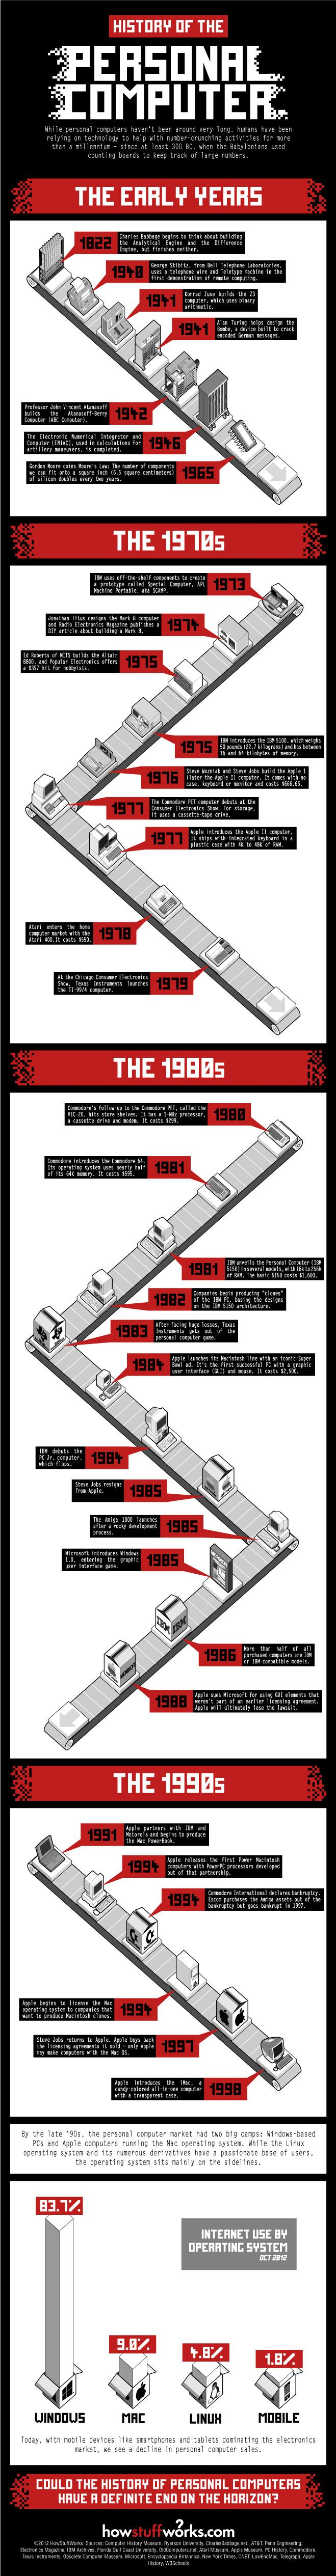 A Brief History of the Personal Computer - infographic